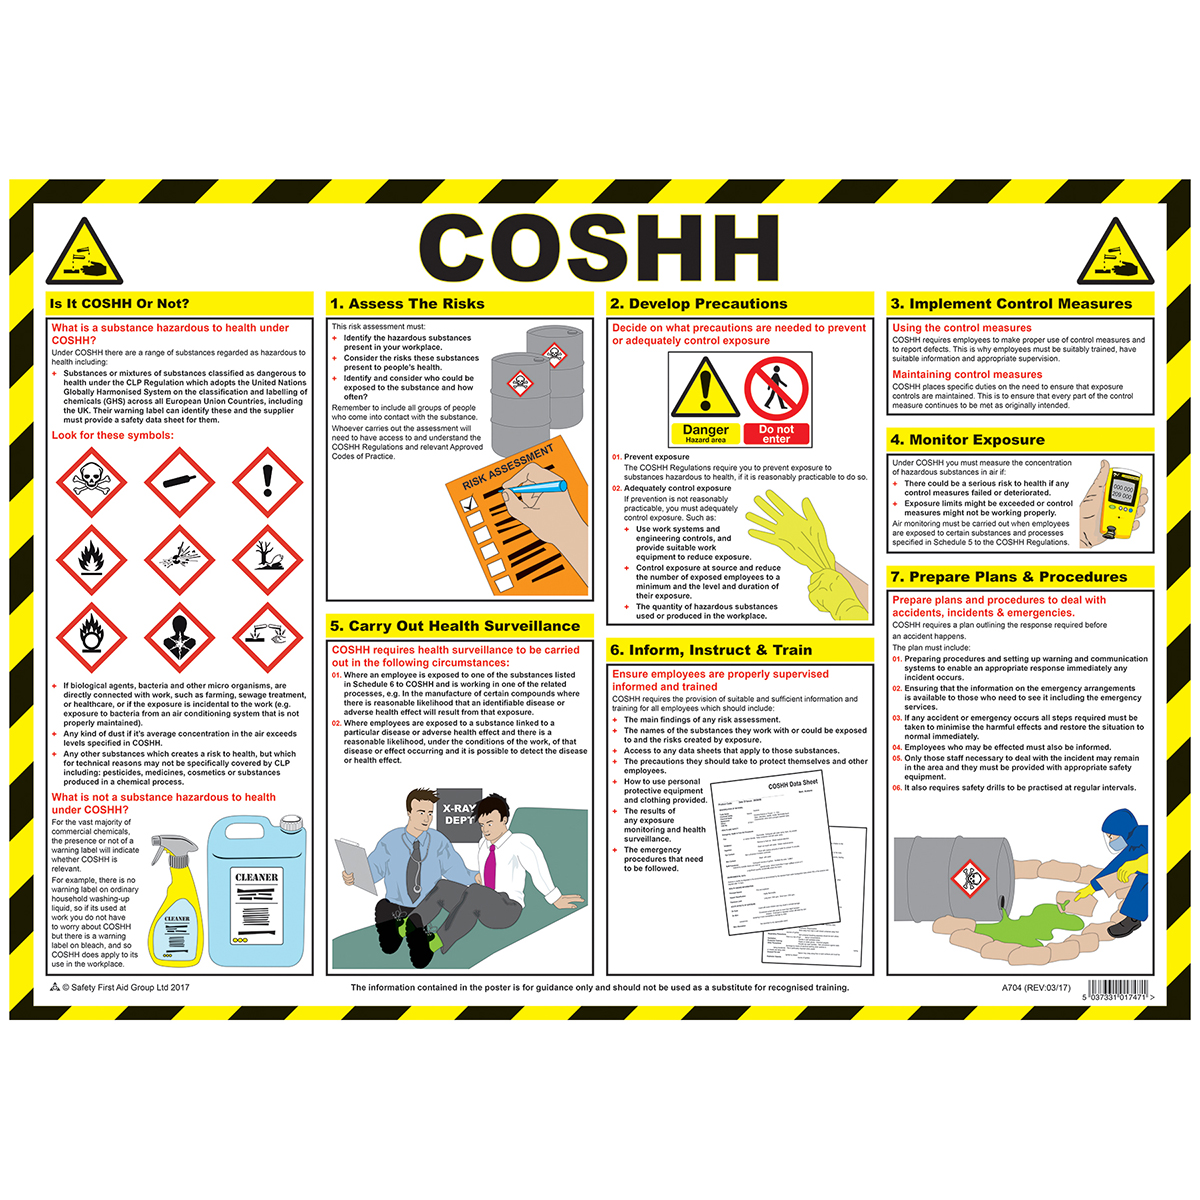 COSHH Poster, 2017